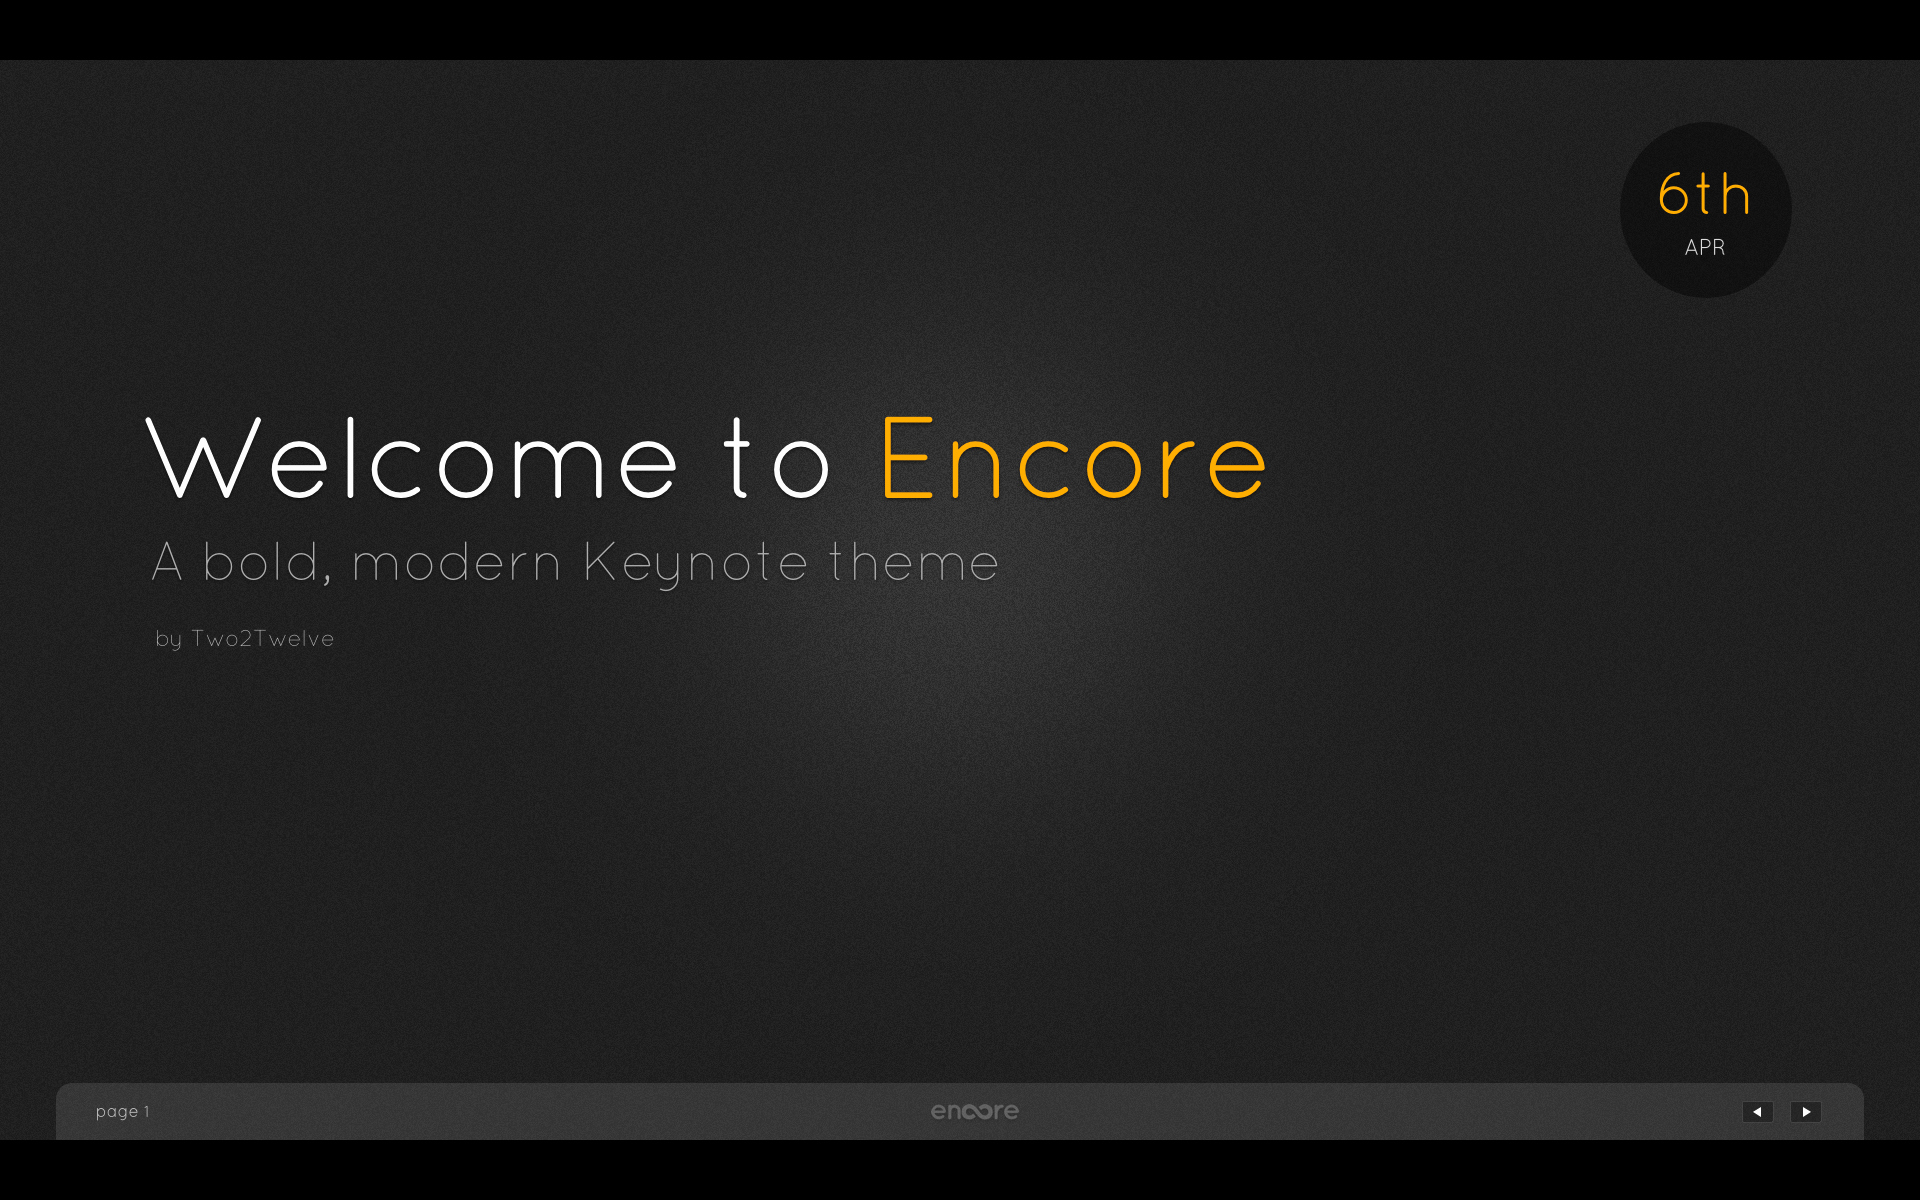 Encore Menu Template Unique Encore Keynote Presentation Template by Two2twelve